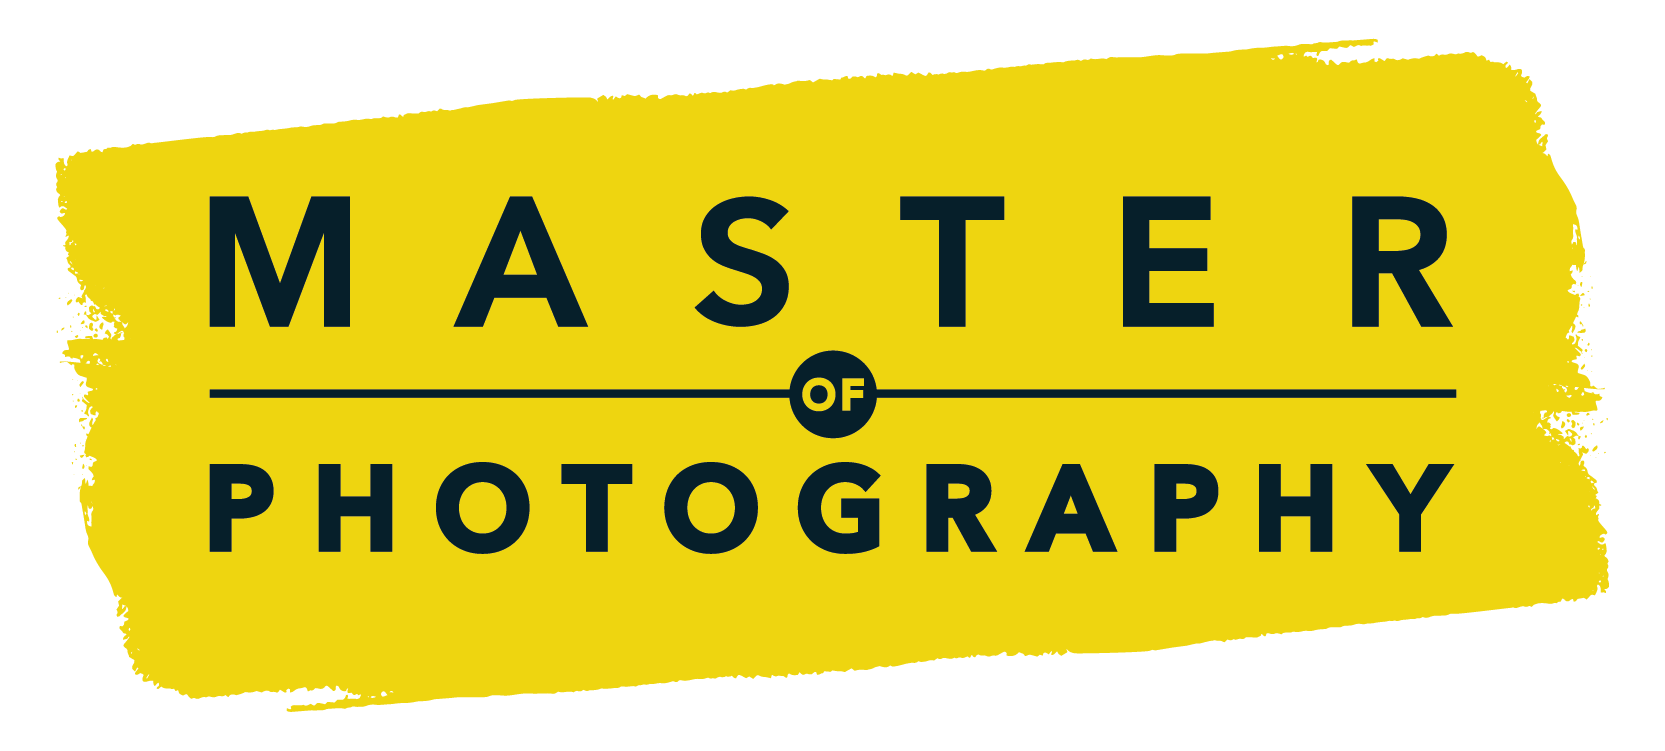 Master of Photography - logo